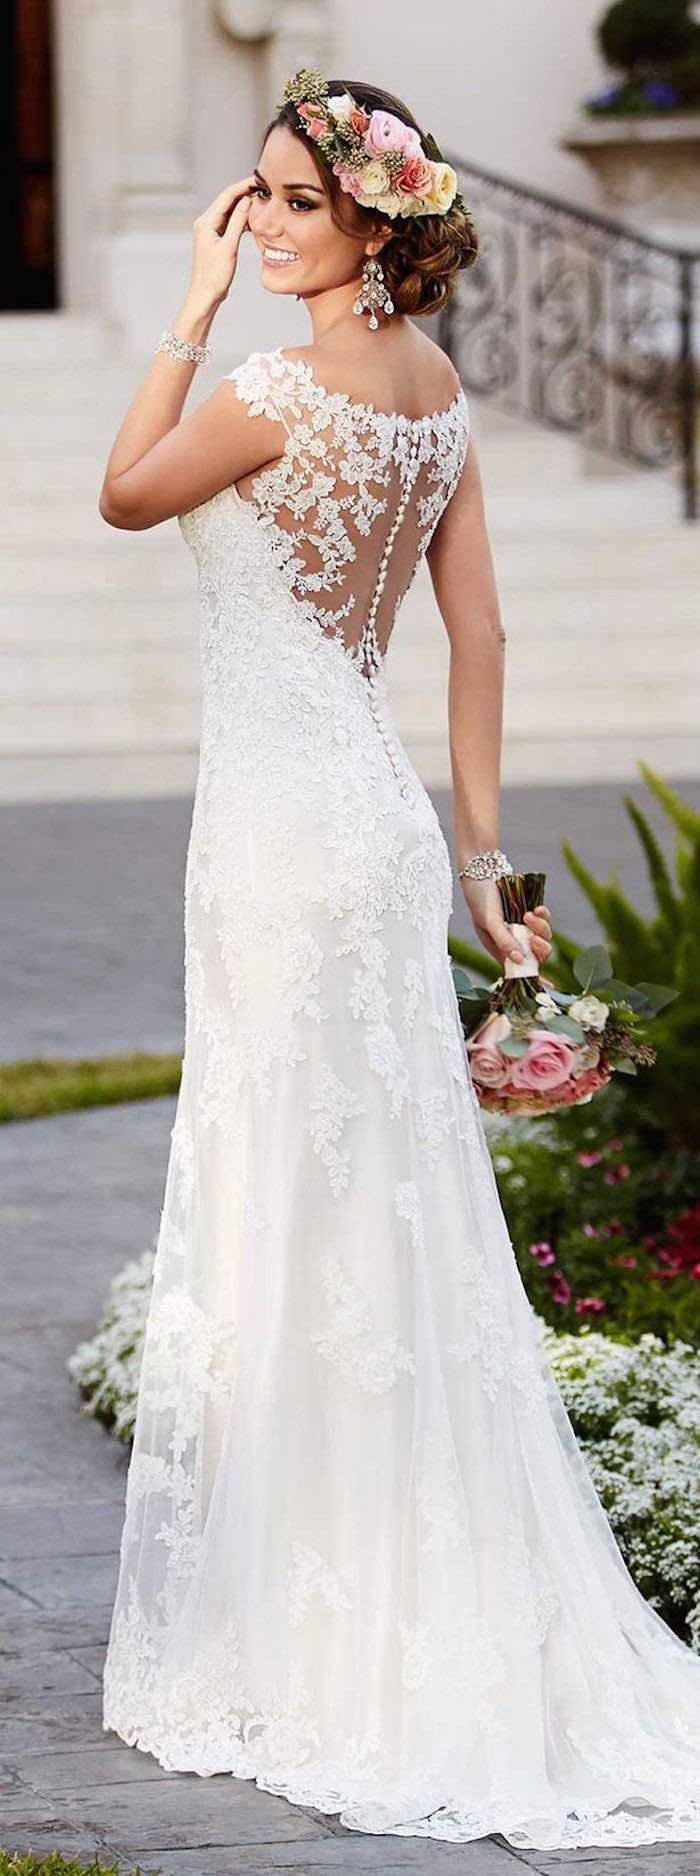 Best 25 2016 wedding dresses ideas on Pinterest  Wedding